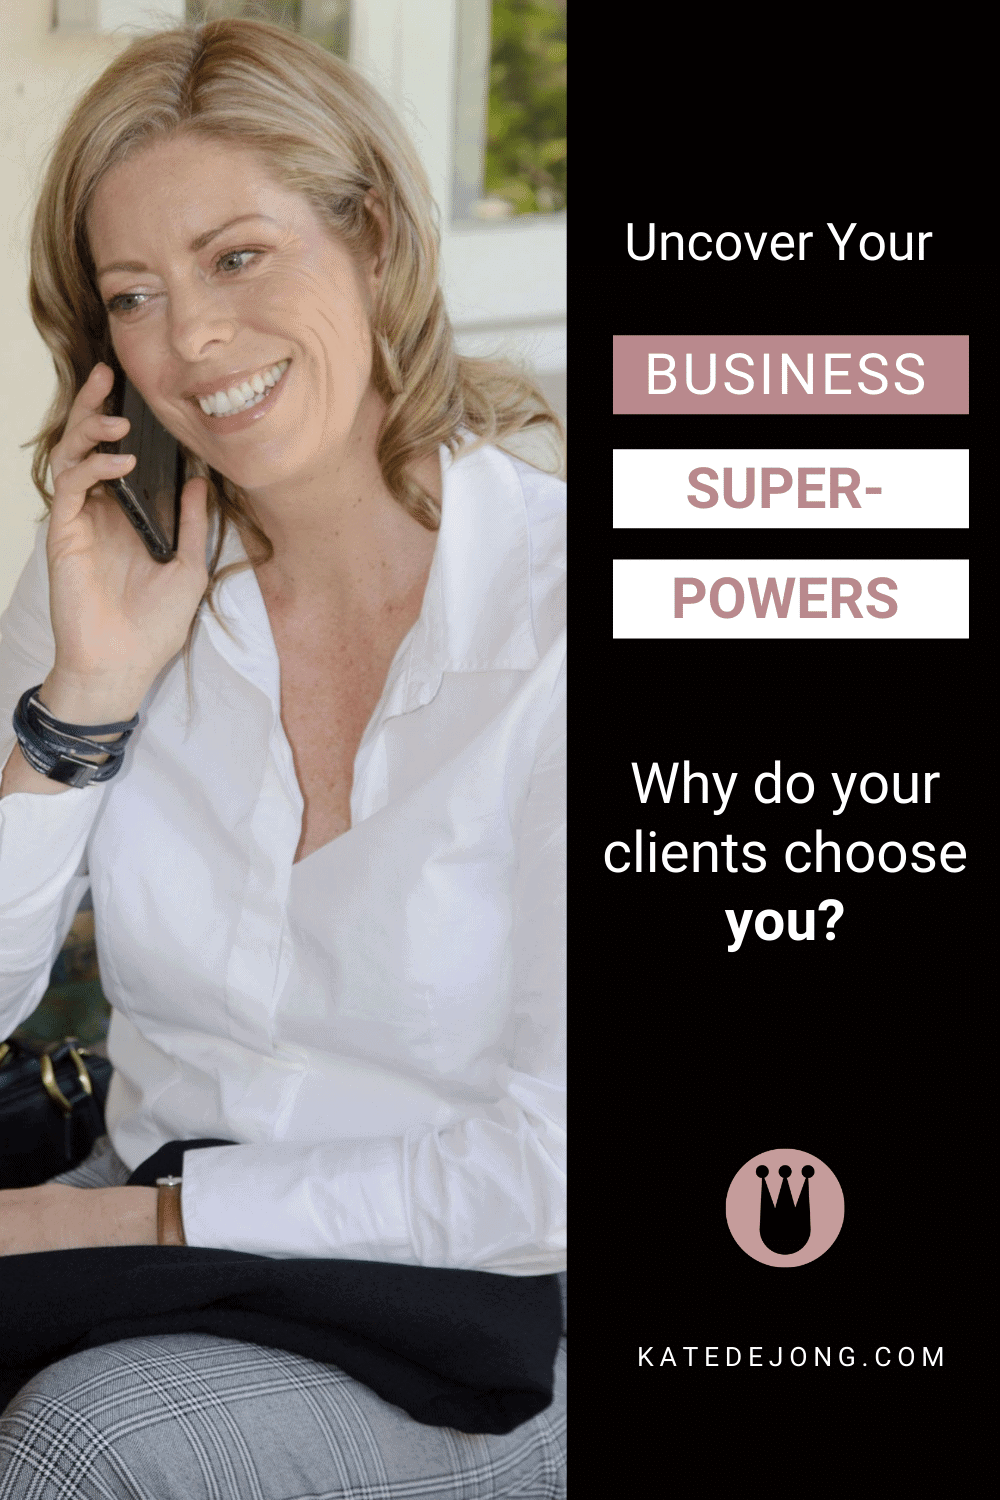 Are you comfortable telling your prospects about what makes you so good at what you do? Do you tell them why your clients choose you? If not, you need to! If you don't tell them, how are they meant to know how good you are? An easy way to convey your business excellence is through what I call your Business Superpowers. Read on to discover how you can figure out what yours are. #fempire #smallbusiness #businesscoach #businesscoachforwomen #entrepreneur #businessgrowth #growthstrategies